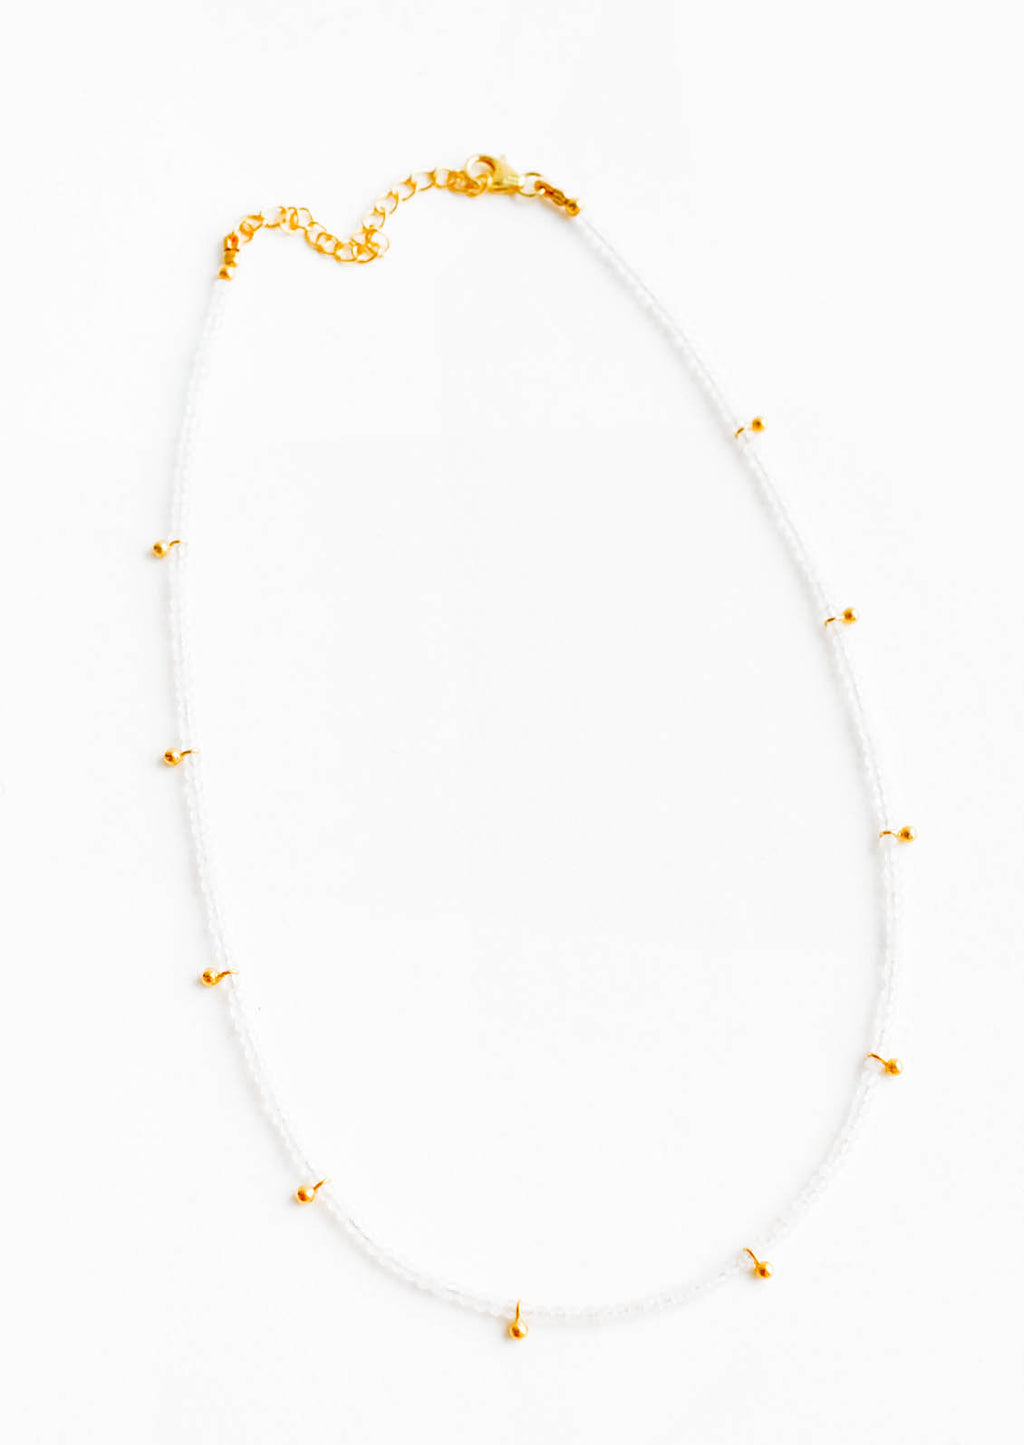 Moonstone: A necklace of clear gray gemstones with evenly spaced gold beads and a golden chain clasp.